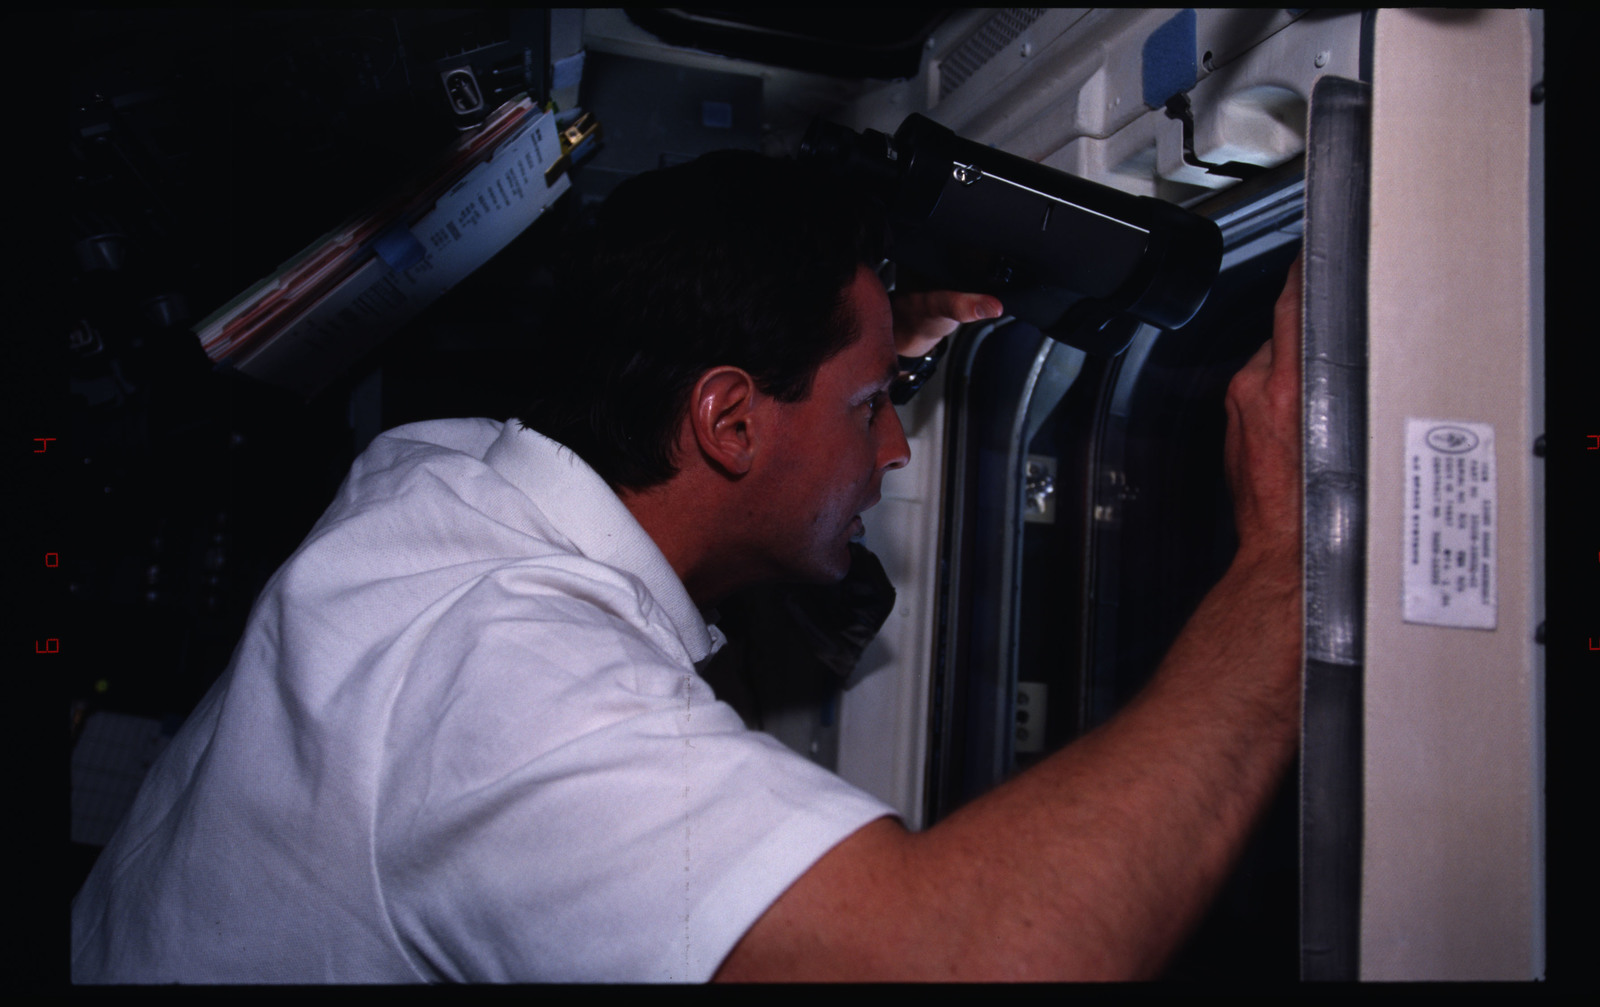 STS082-333-028 - STS-082 - Crewmember activities in the shuttle middeck and flight deck